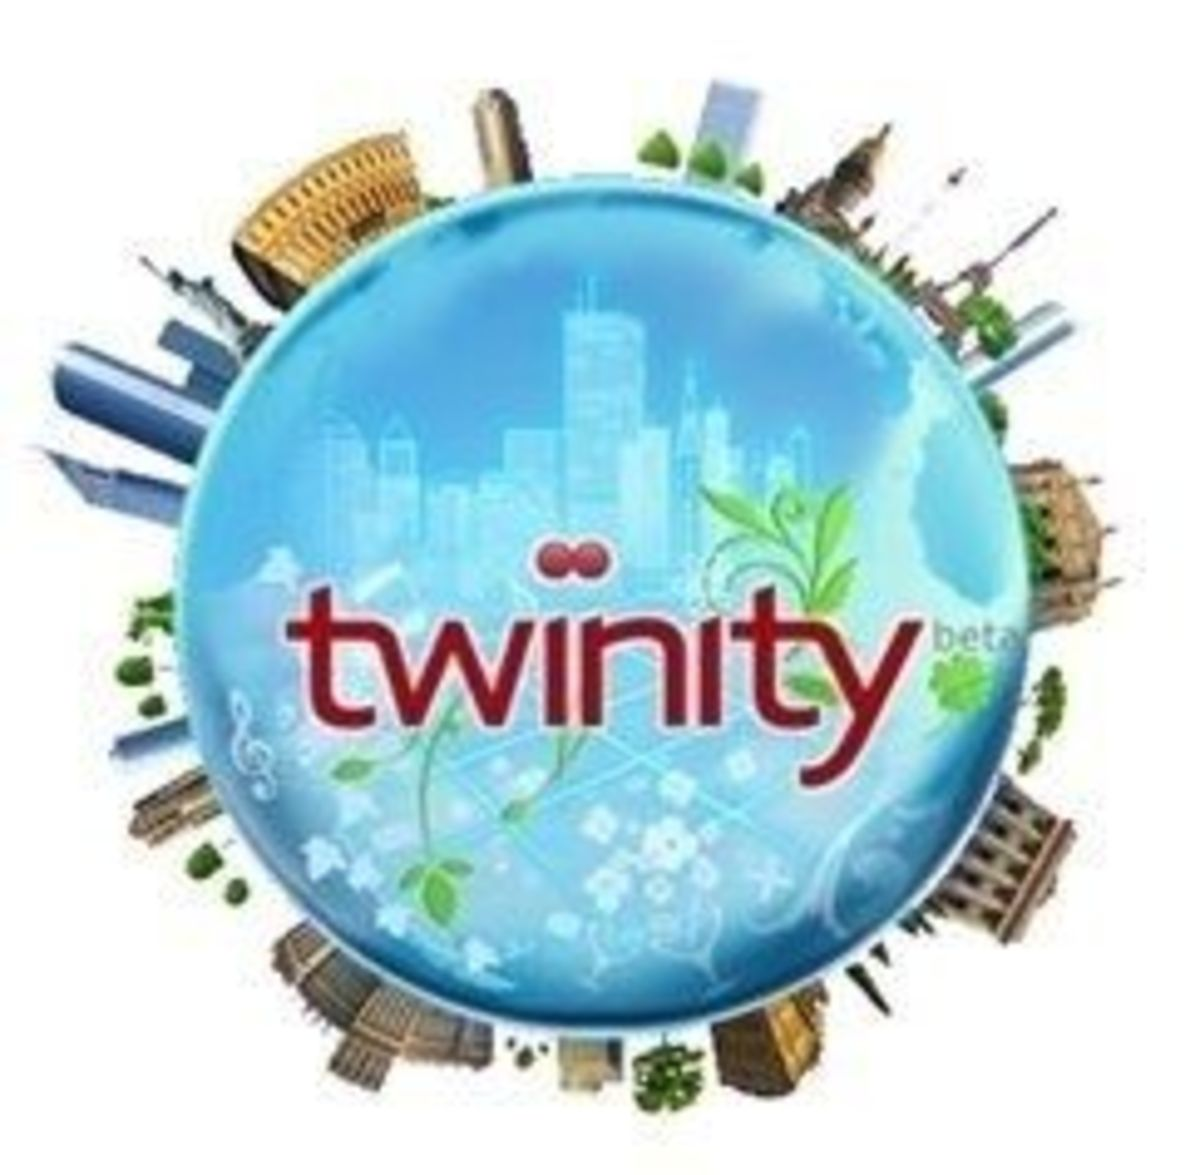 twinity-virtual-world